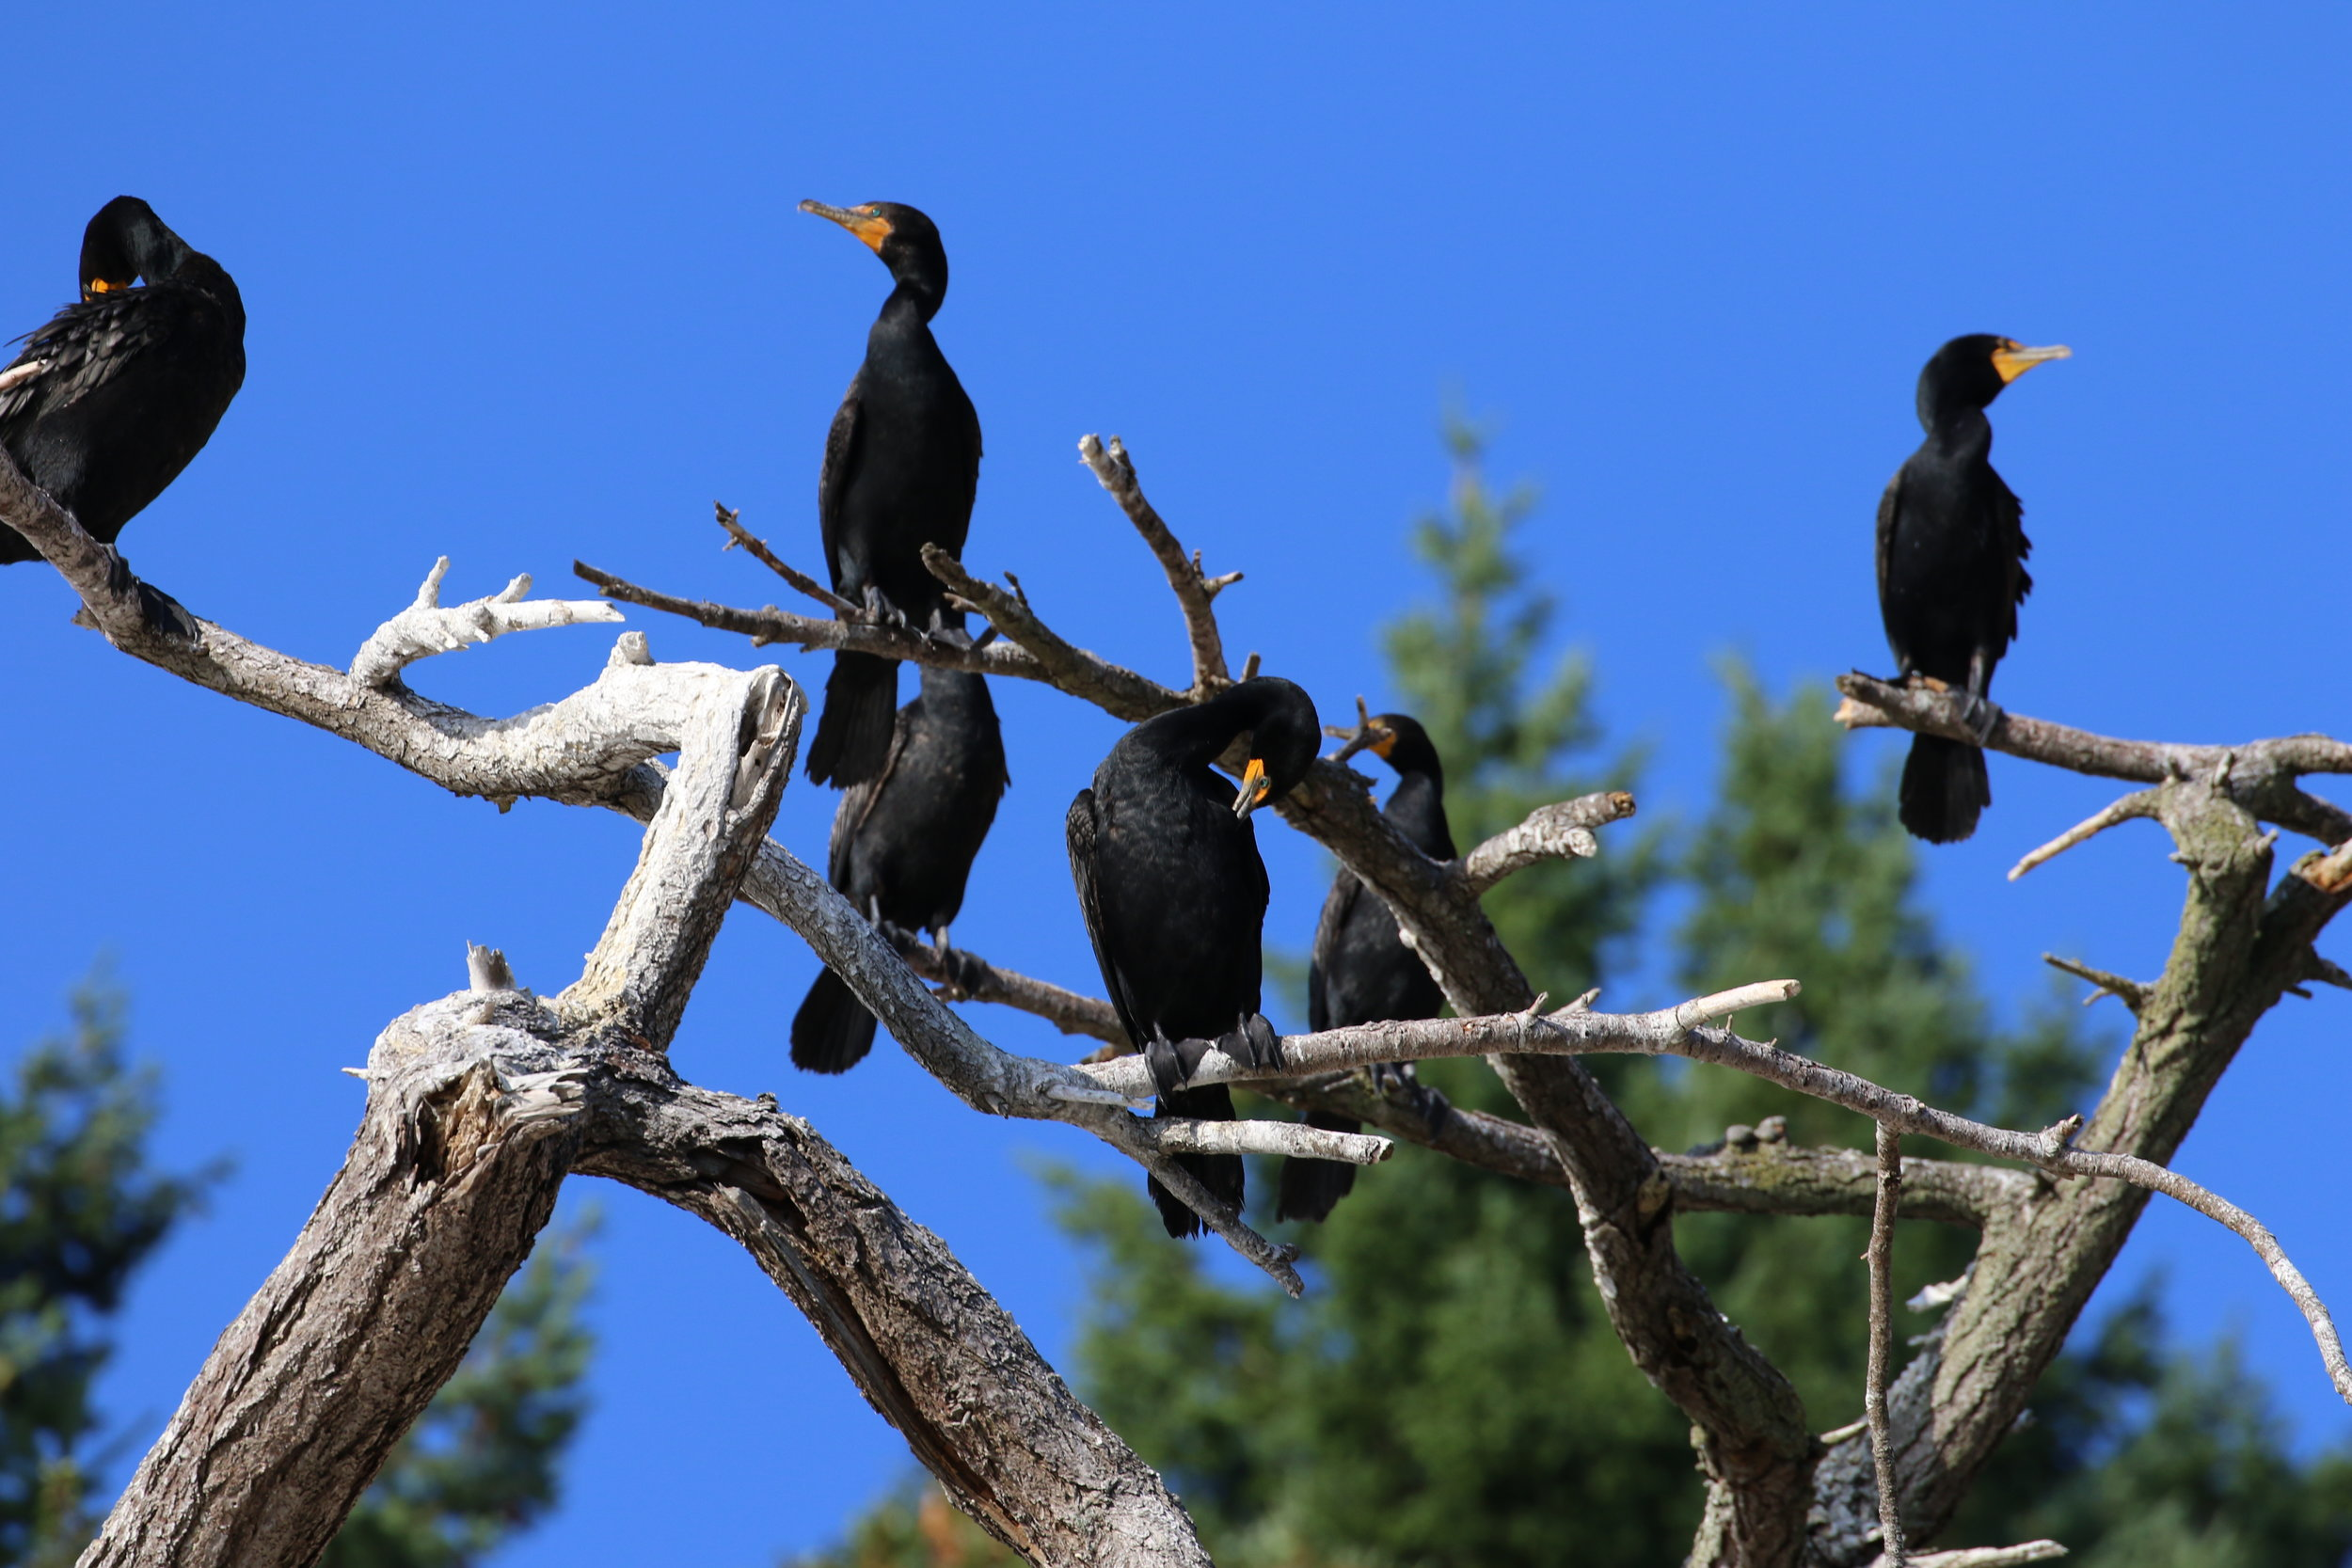 Cormorants hanging out on a tree. Photo by Rebeka Pirker (3:30).